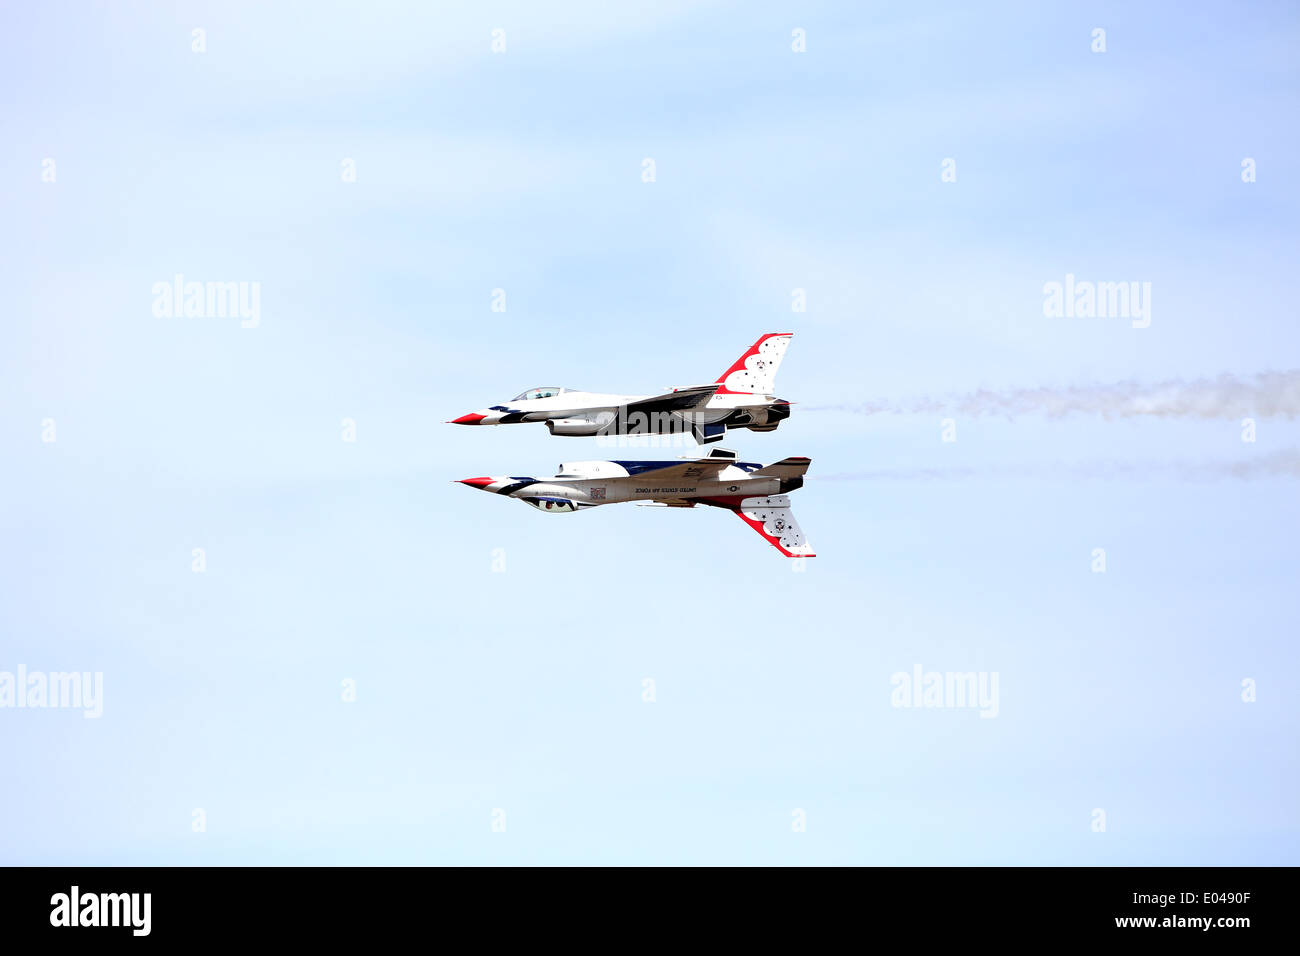 USAF Air Demonstration Squadron ('Thunderbirds') with 2 planes one over the other upside down in flight - Stock Image